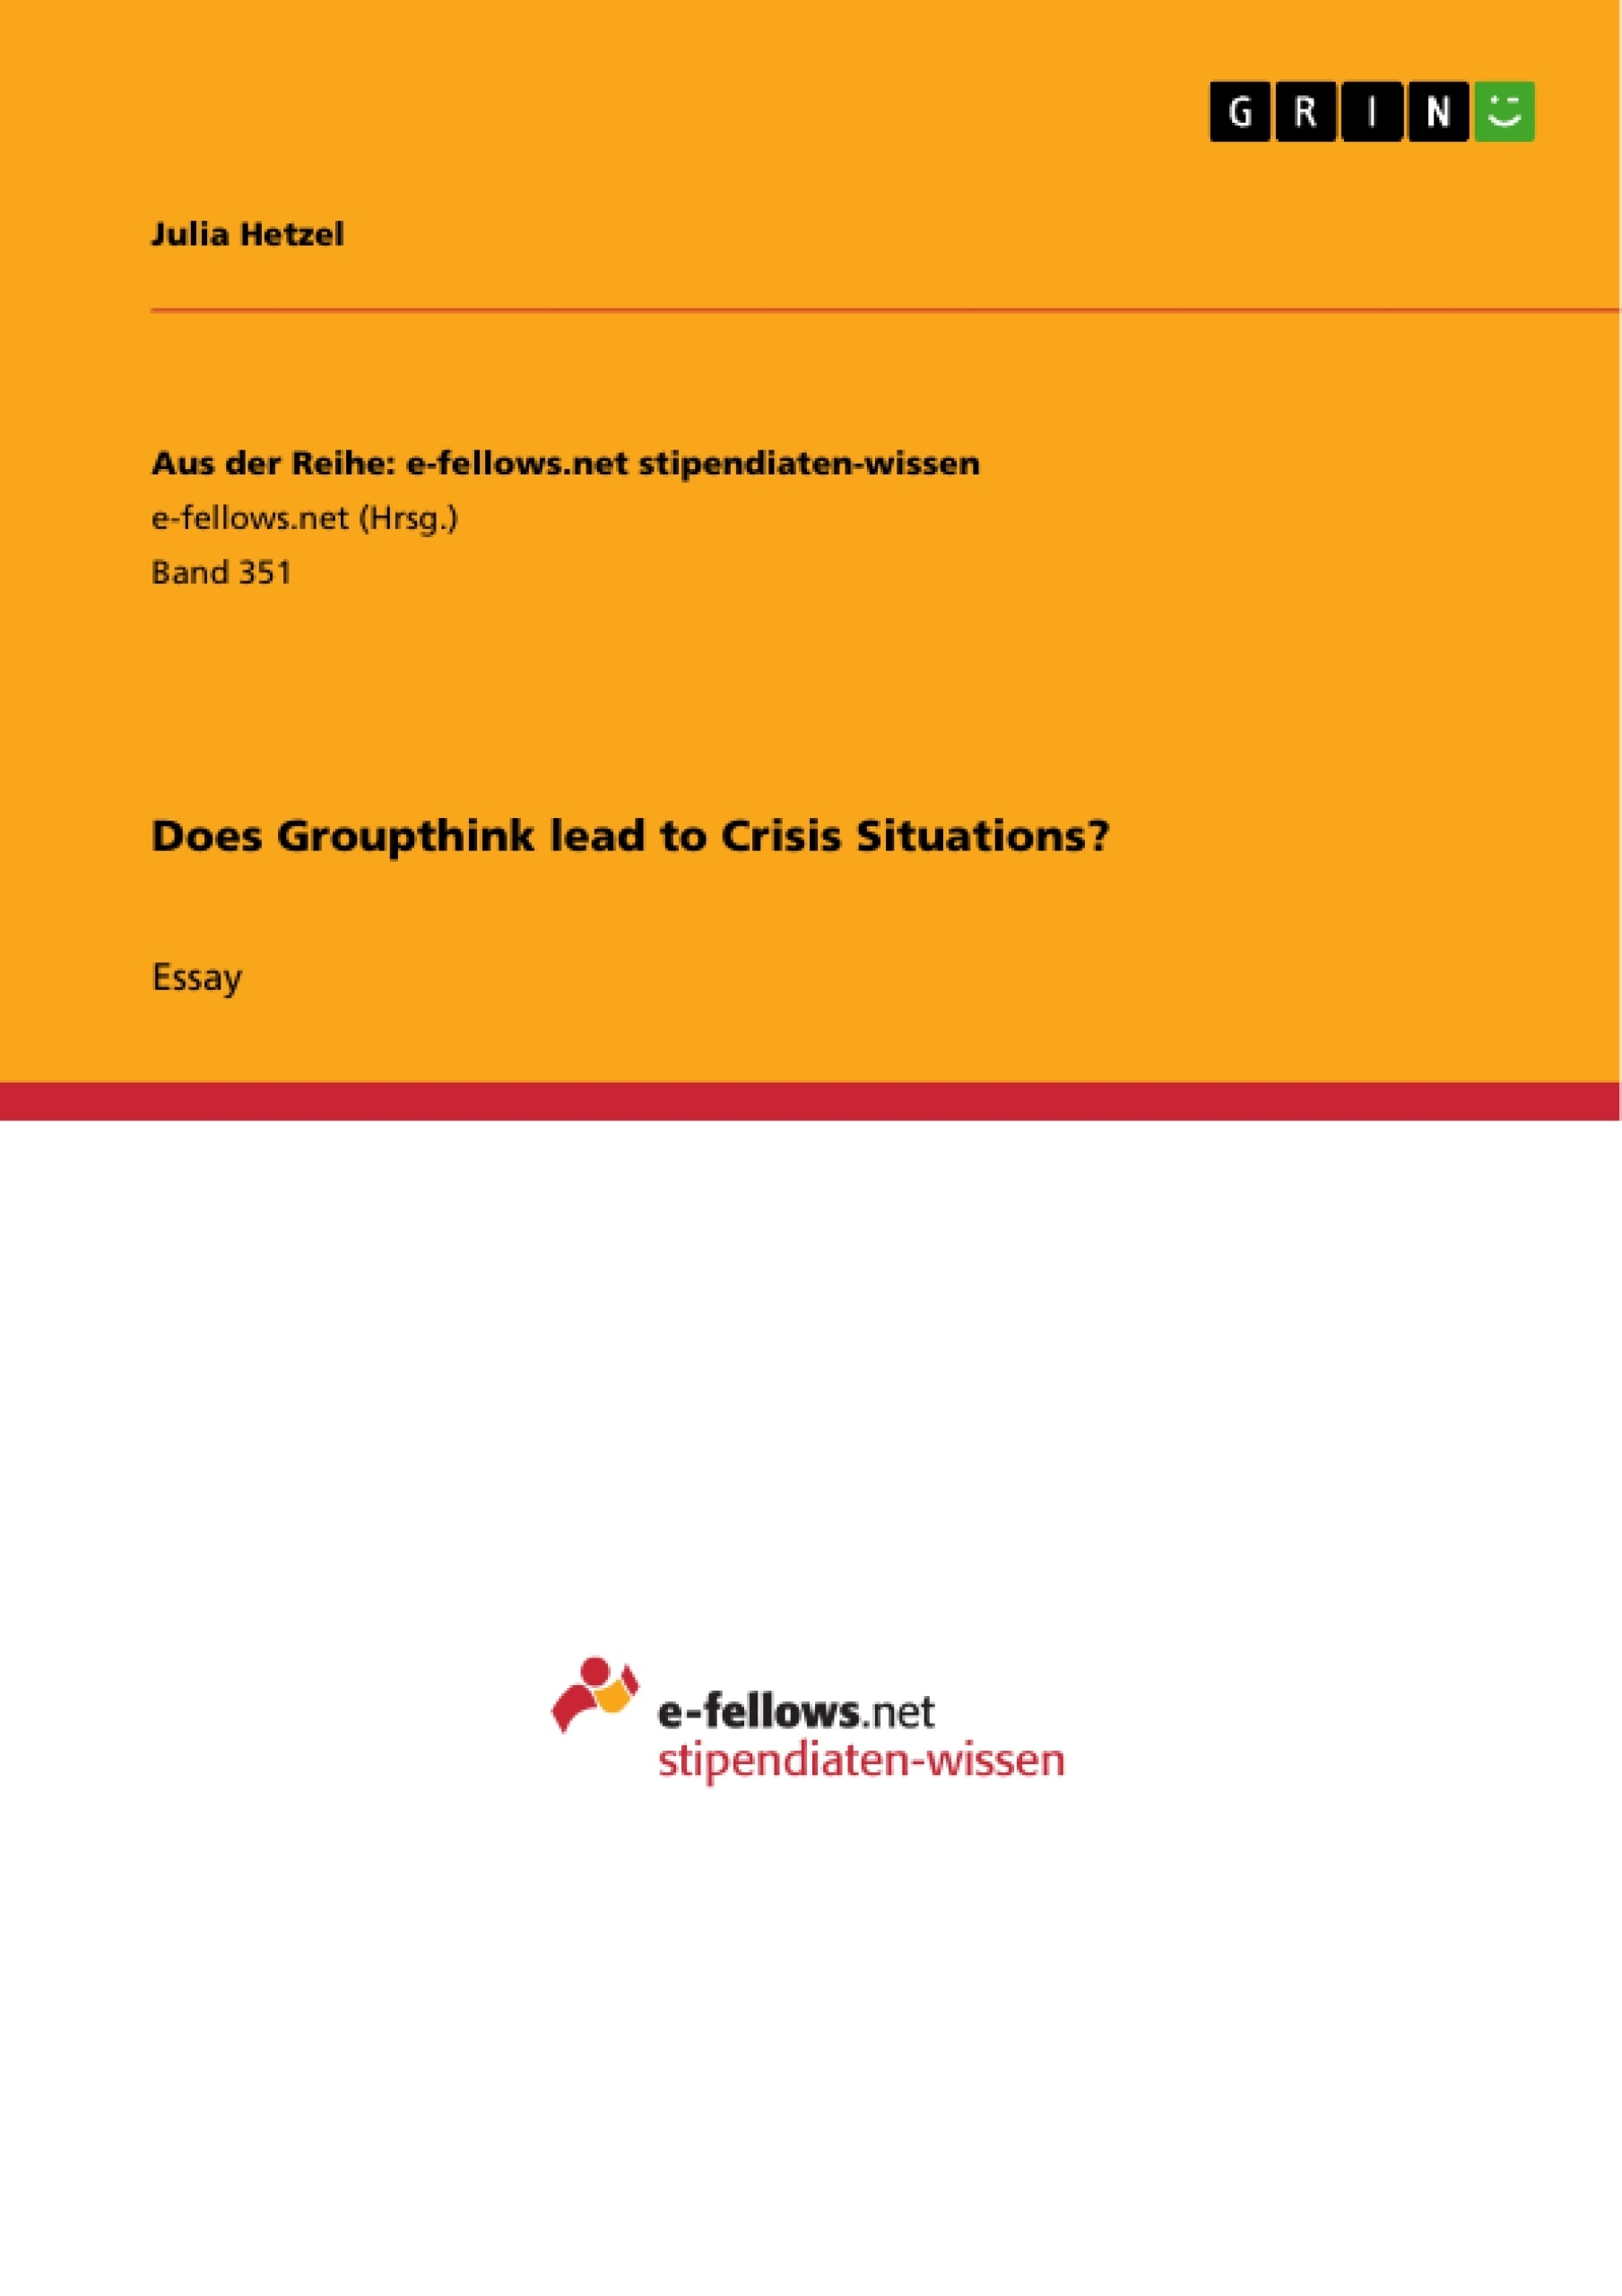 Title: Does Groupthink lead to Crisis Situations?